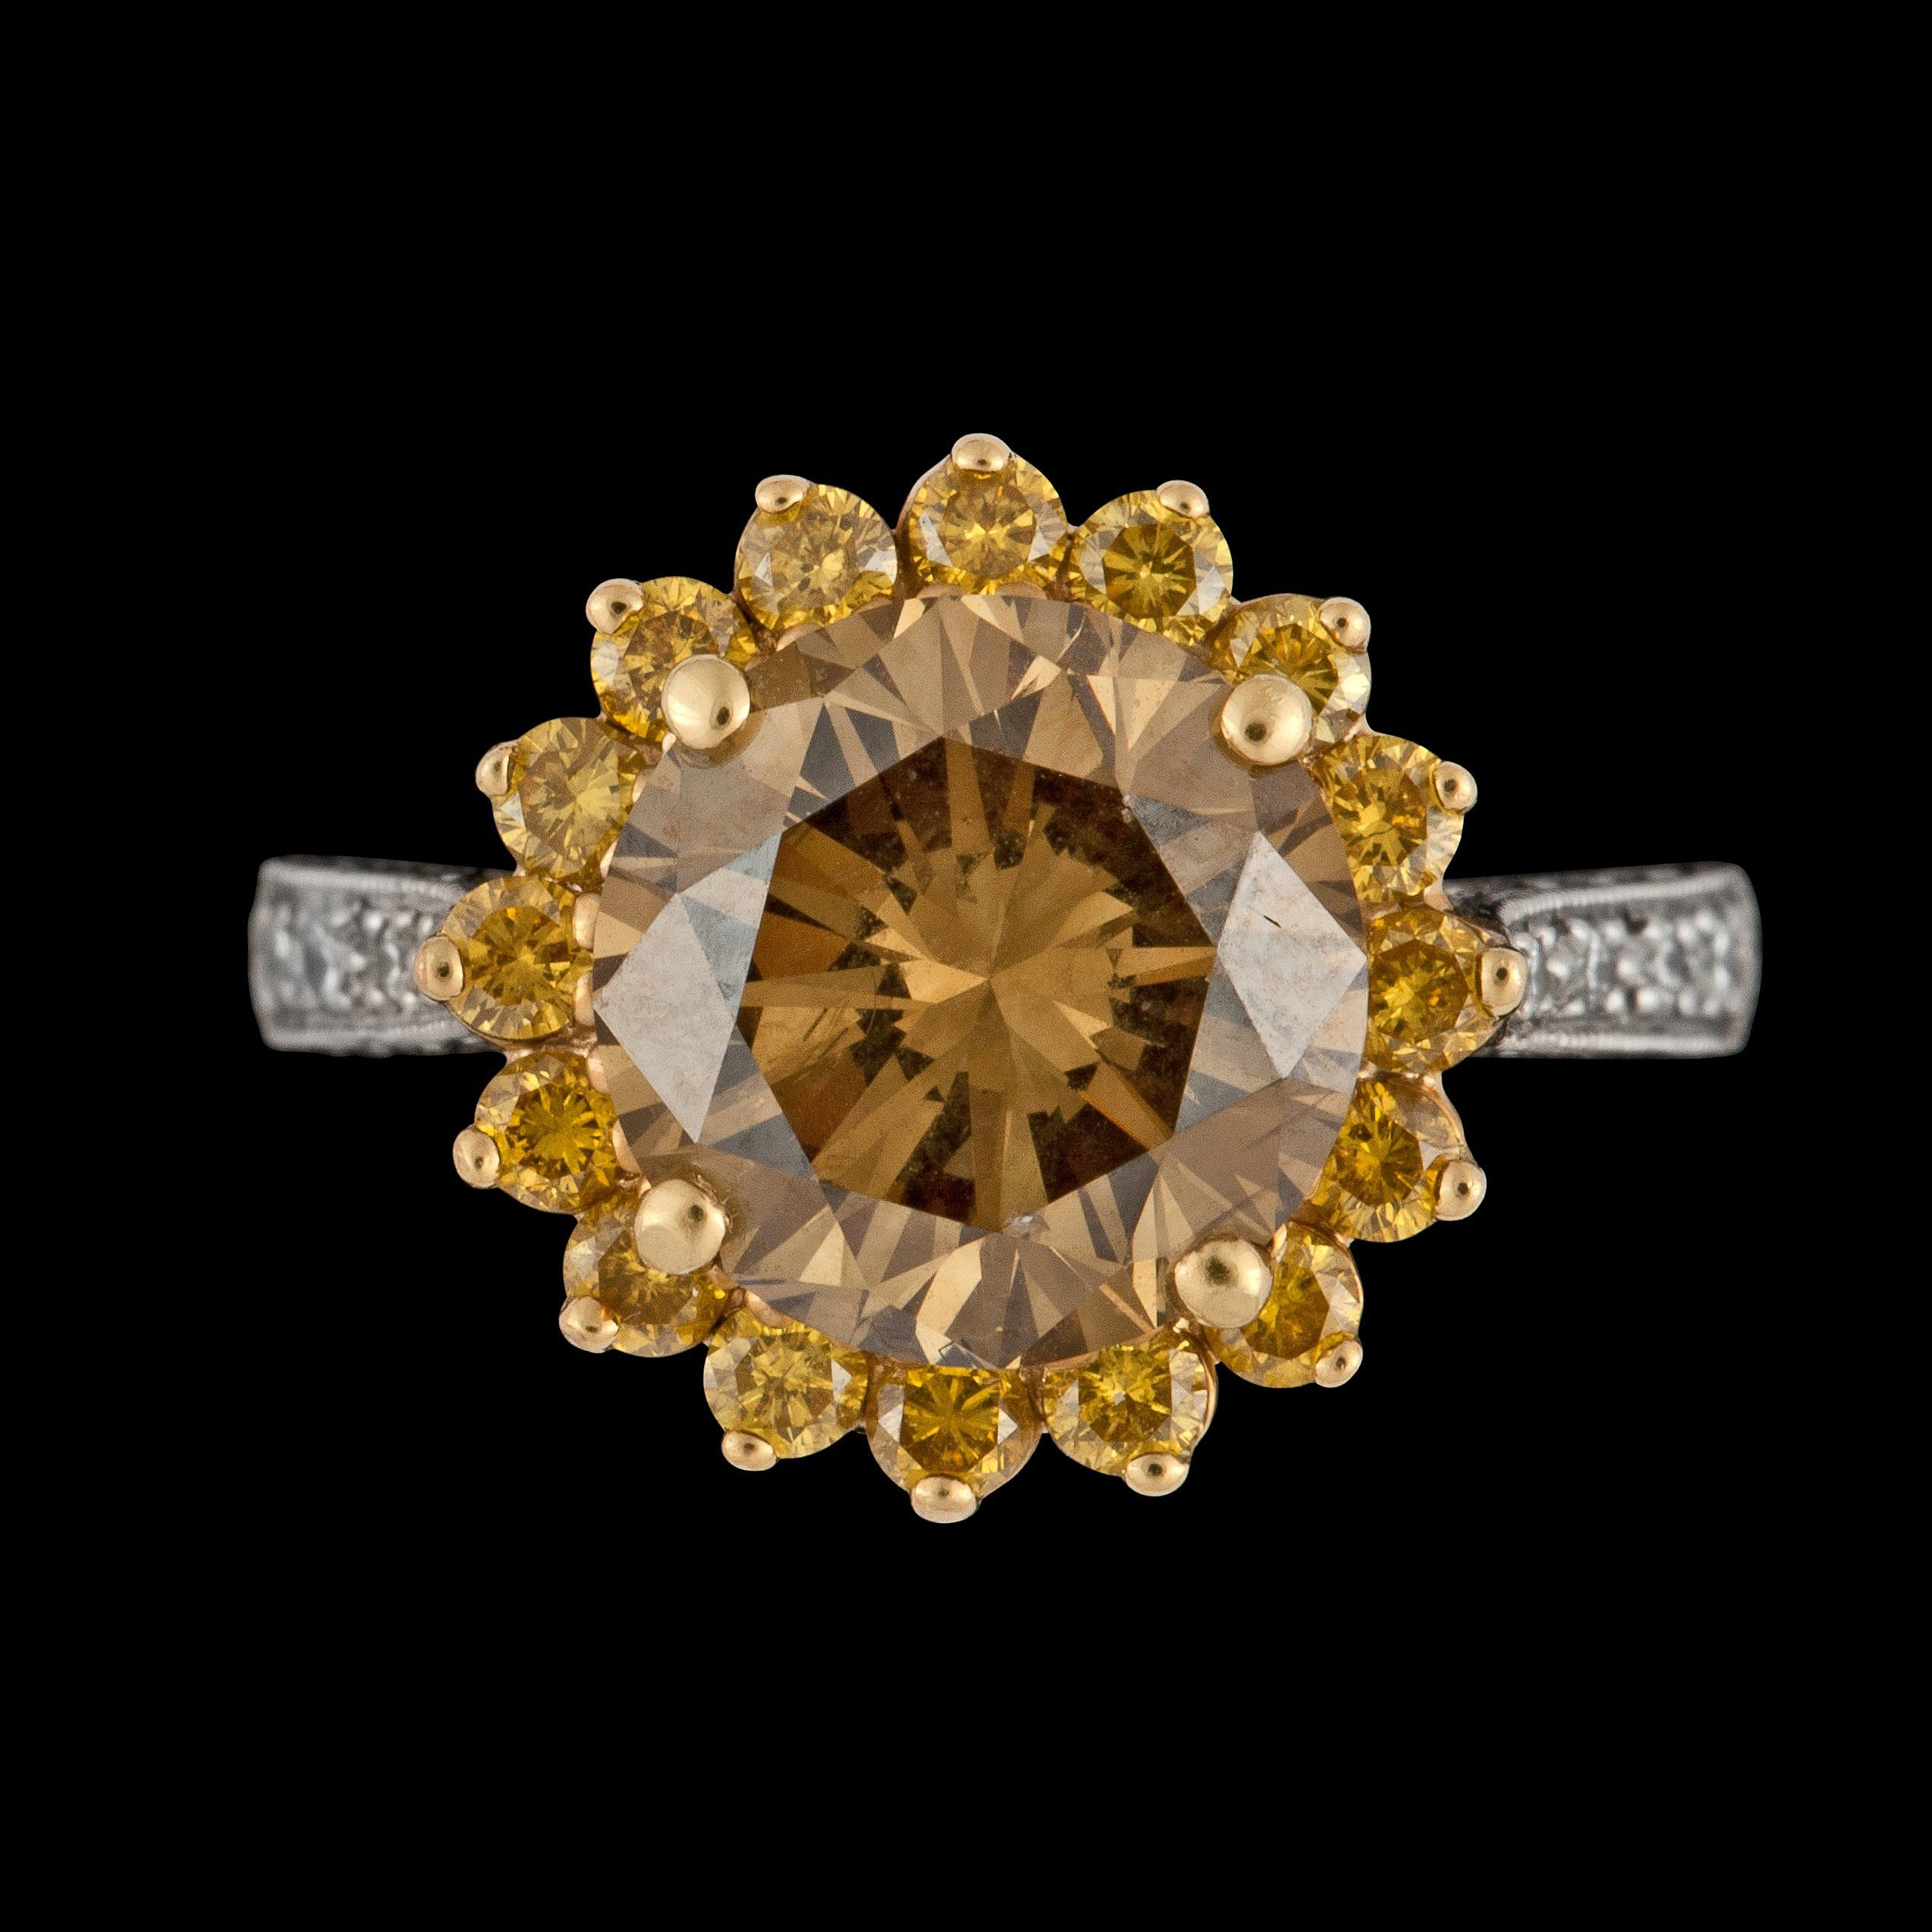 RING, briljant diamant, 3.60 ct, kvalitet fancy brown samt briljantslipade gula diamanter, tot. ca 0.60 ct.